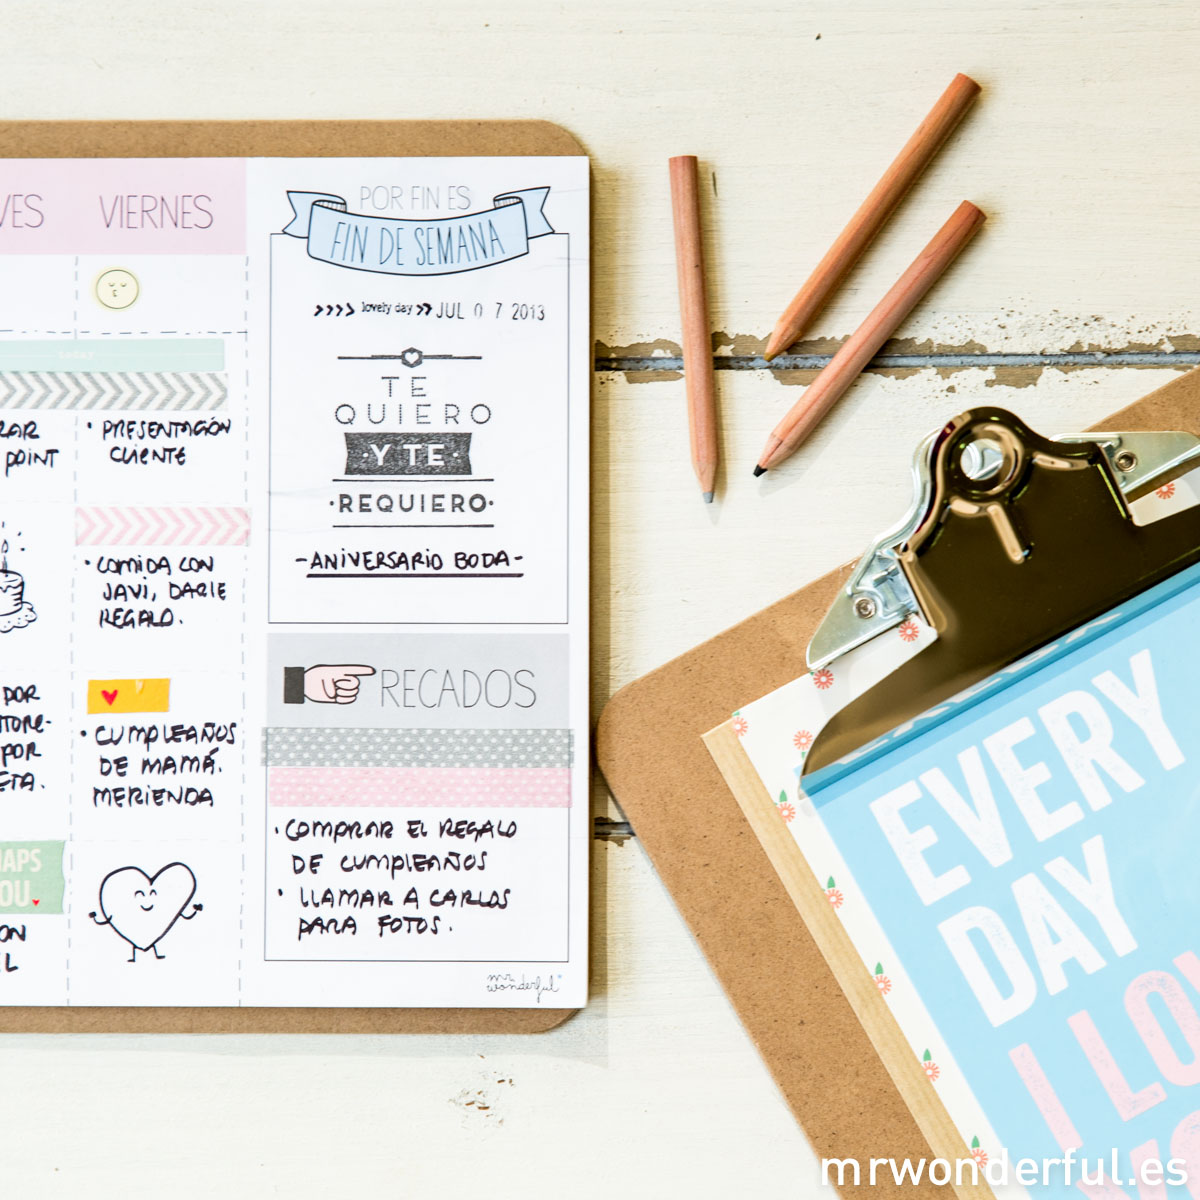 mrwonderful_CARP-01_clipboard-9